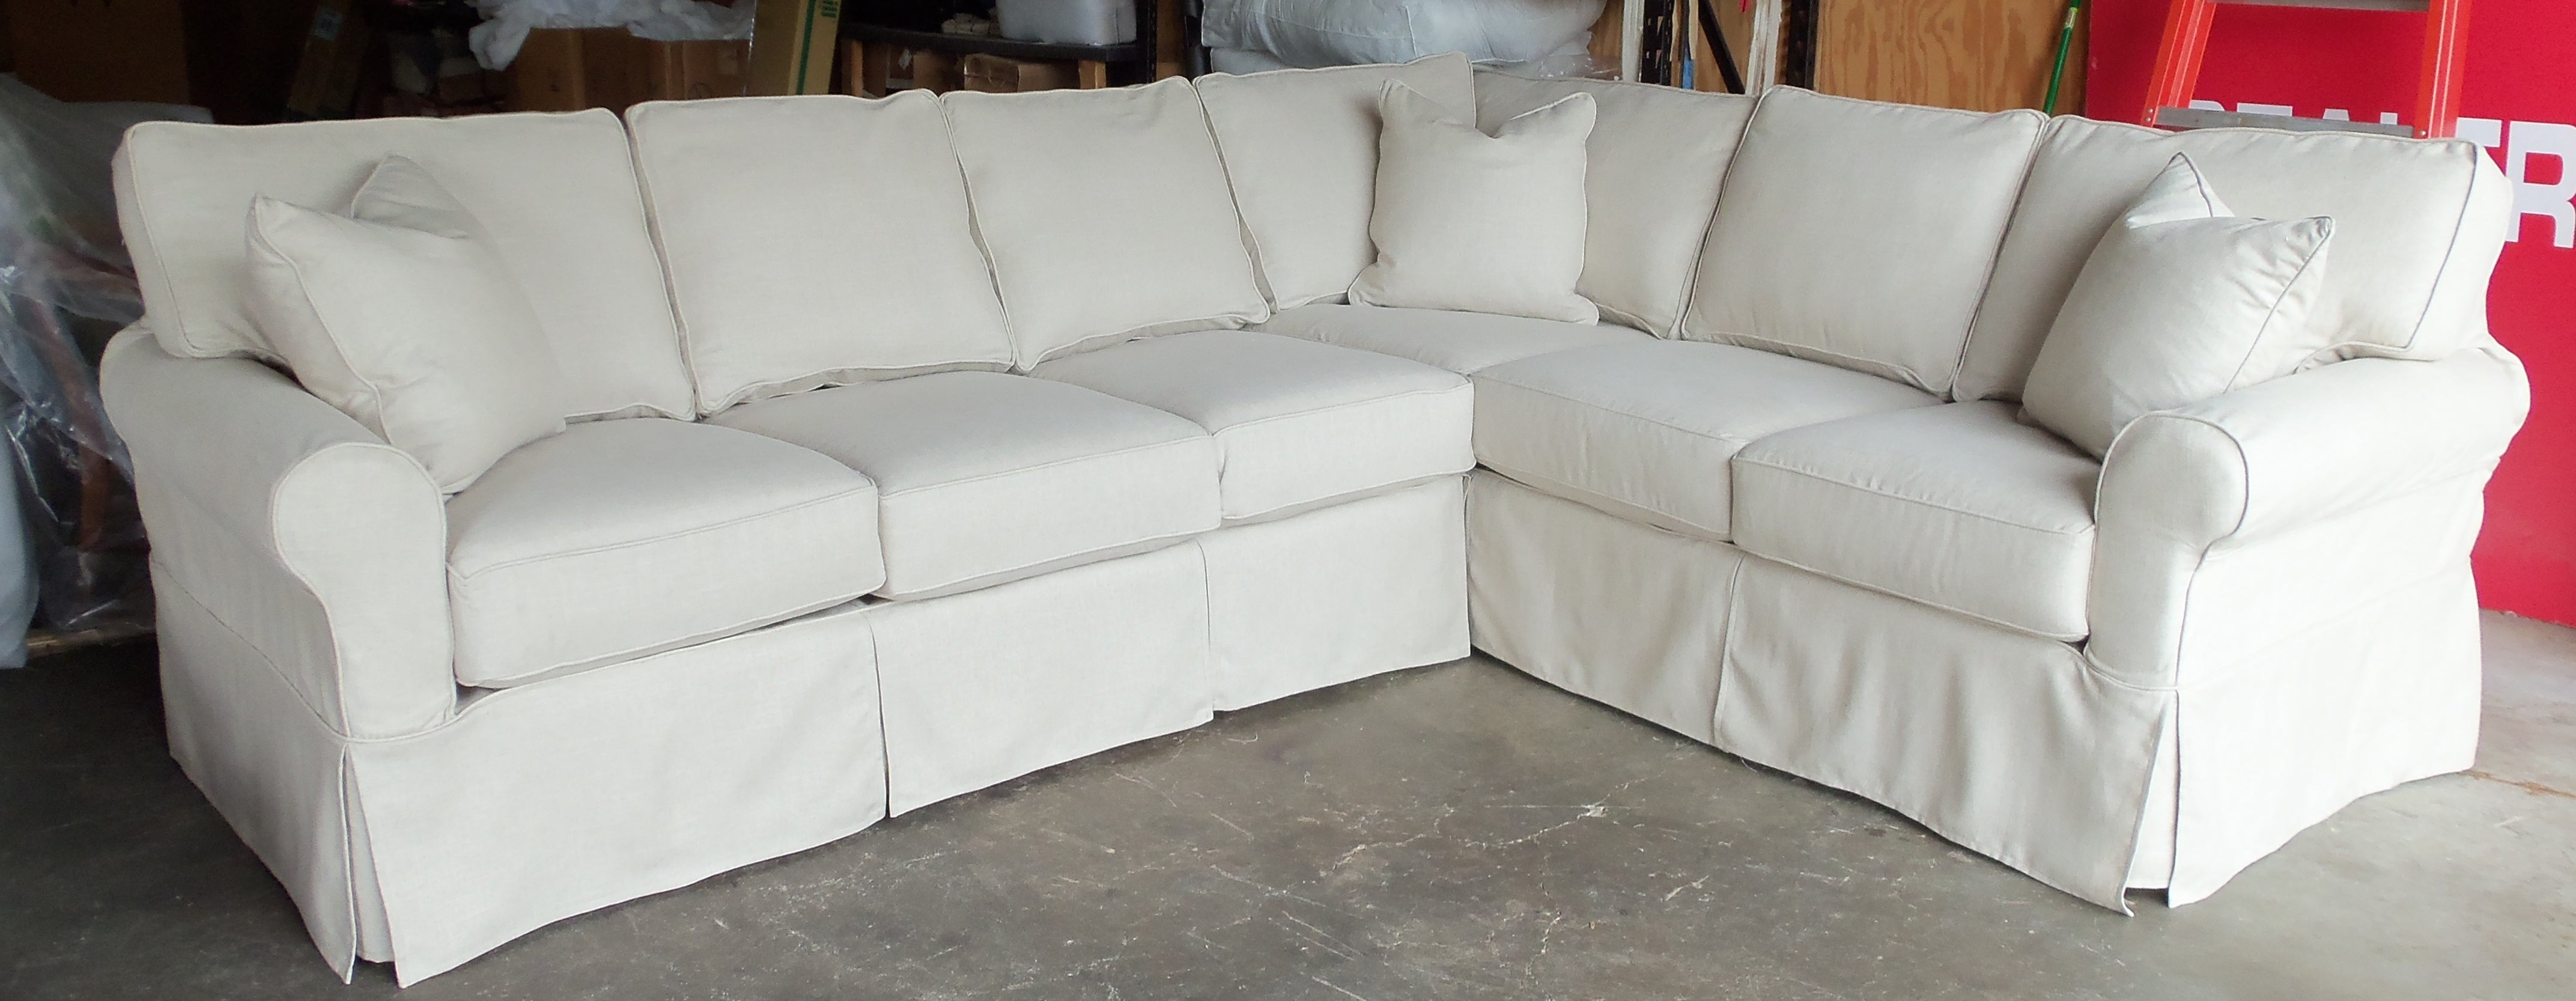 Sectional Sofa Design: Most Comfortable Slipcover Sectional Sofas Regarding Sectional Sofas With Covers (View 2 of 10)